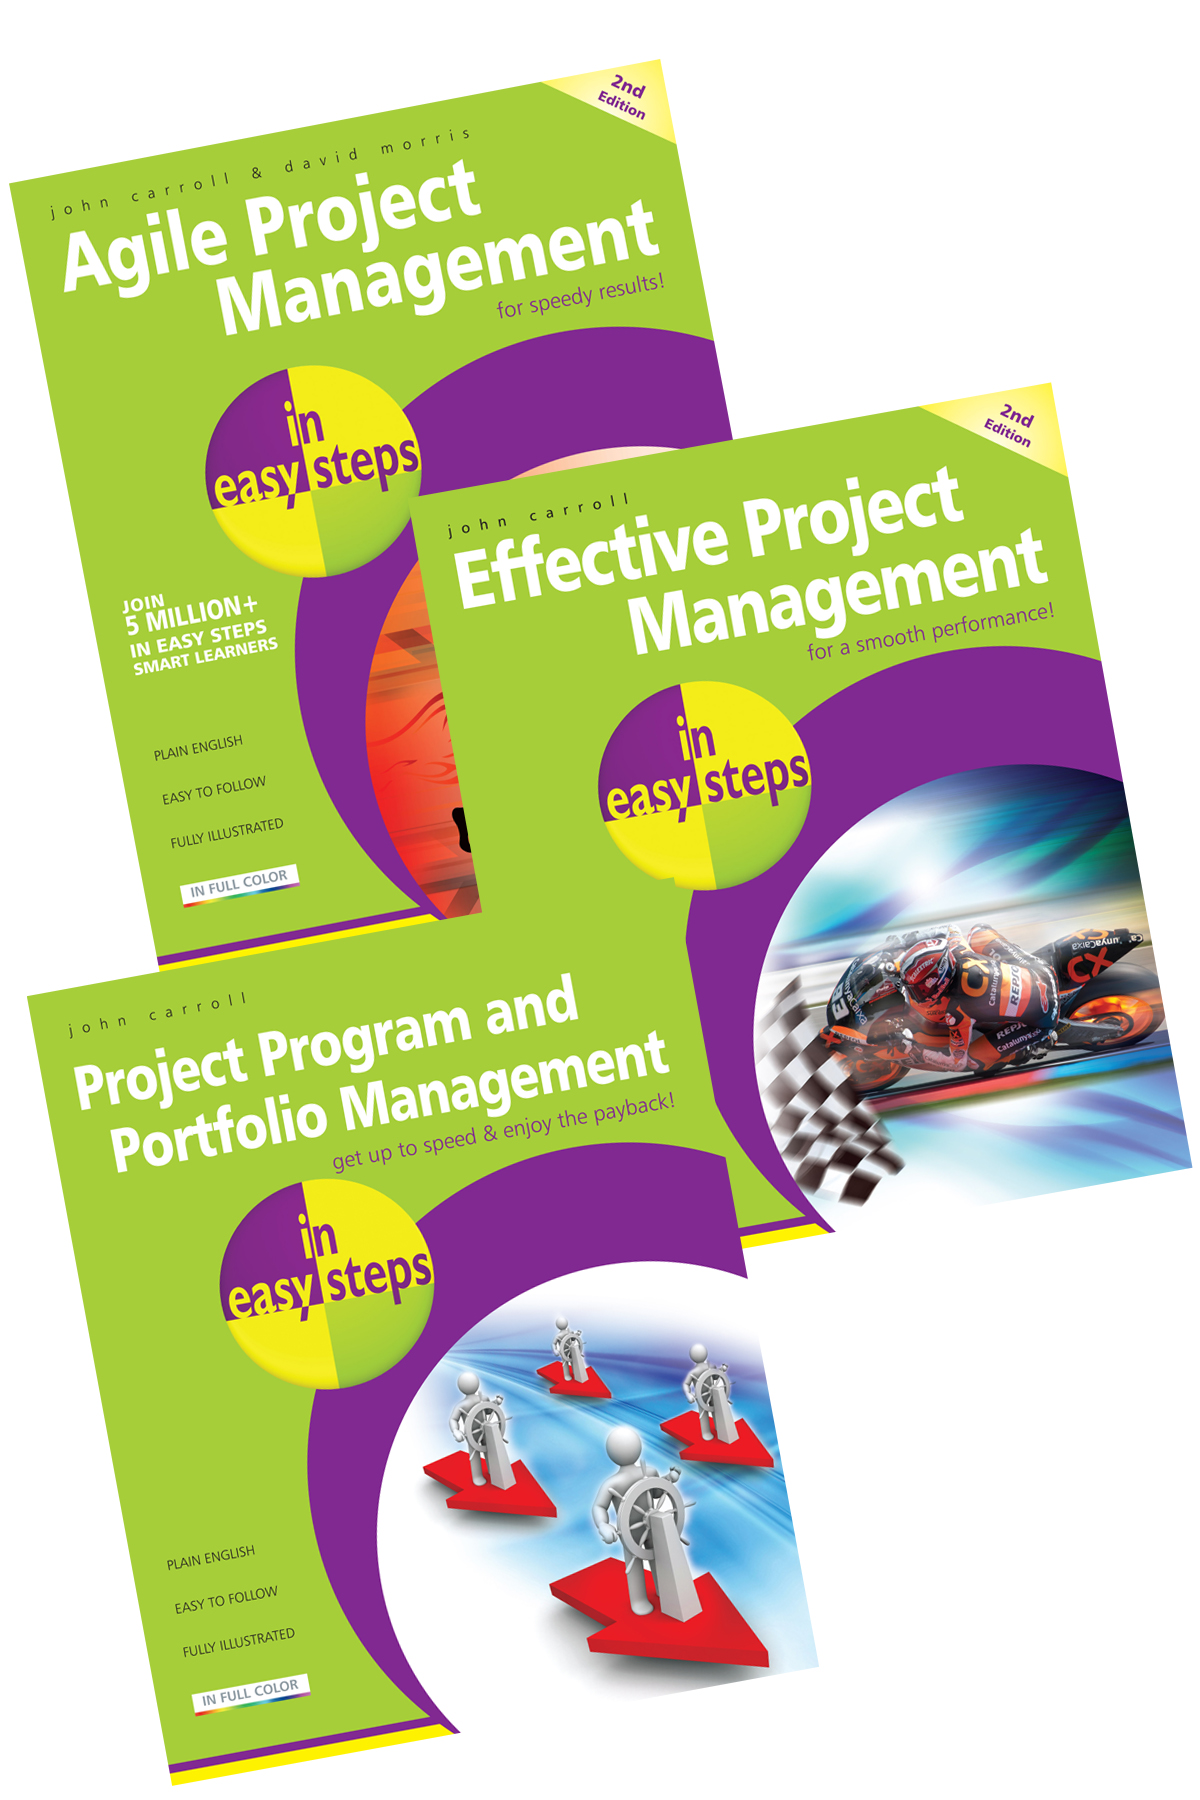 Agile Project Management in easy steps SET